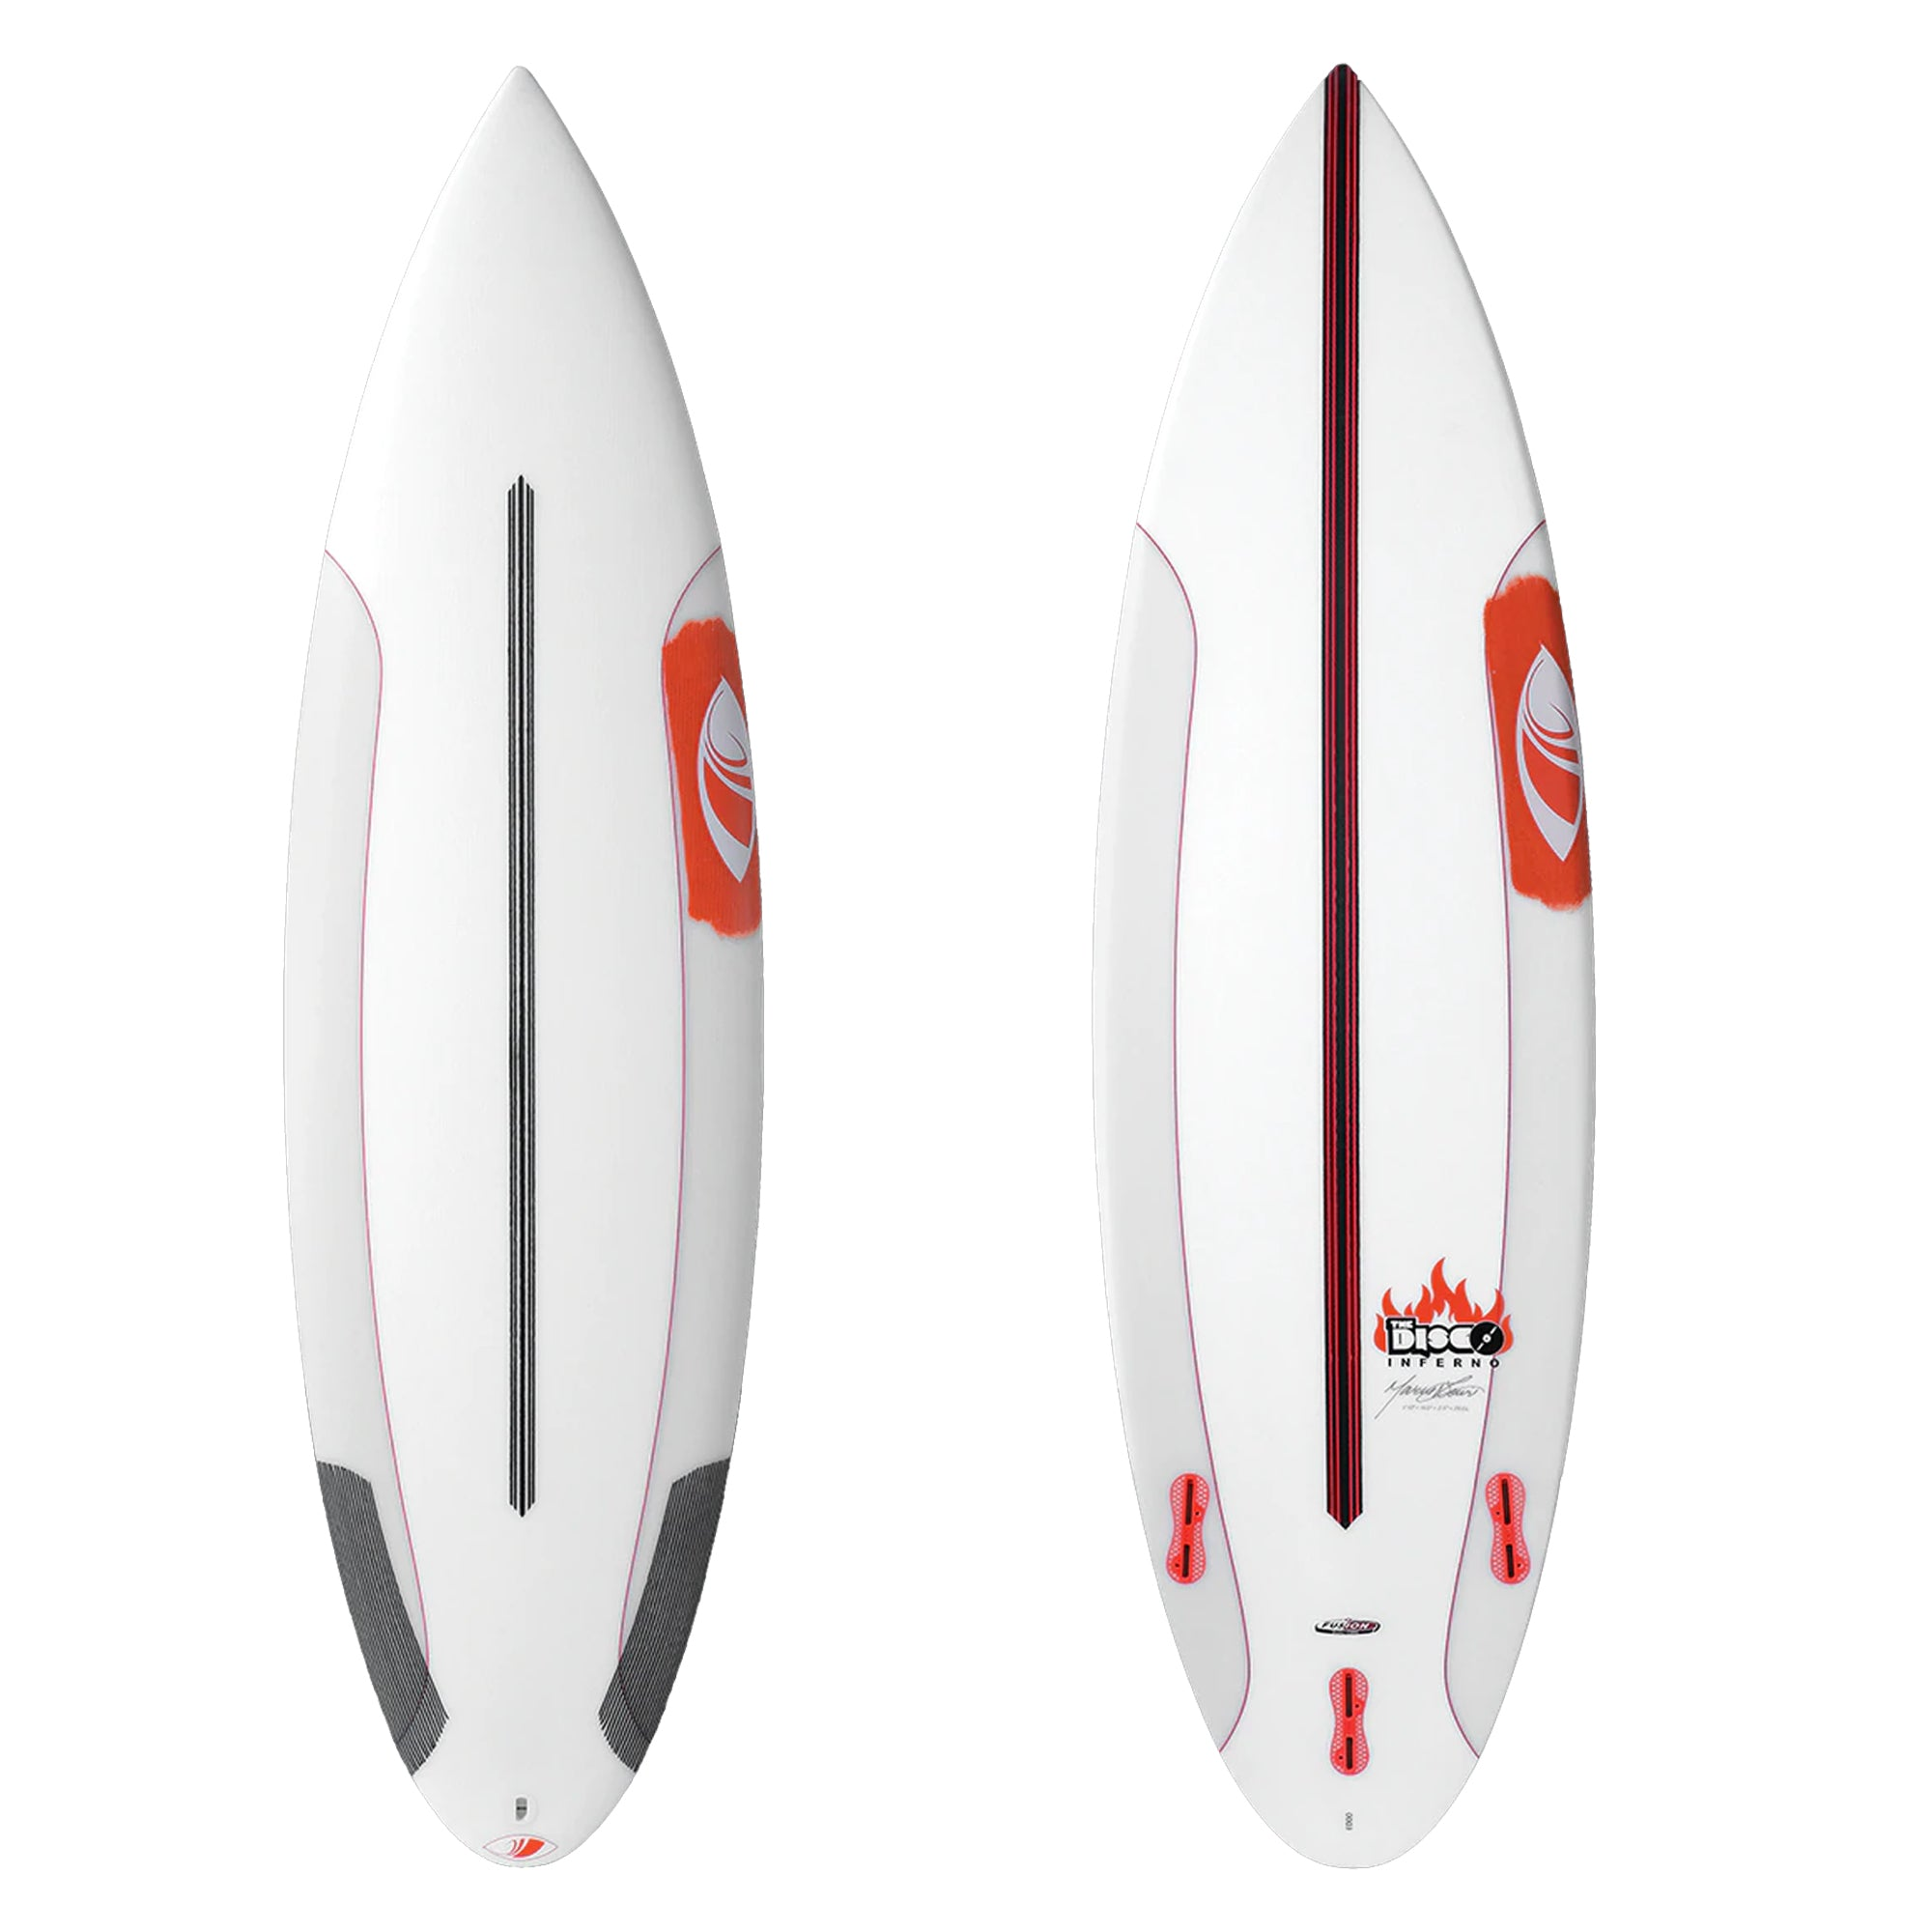 Sharp Eye Disco Inferno Fusion Dual-Core Surfboard